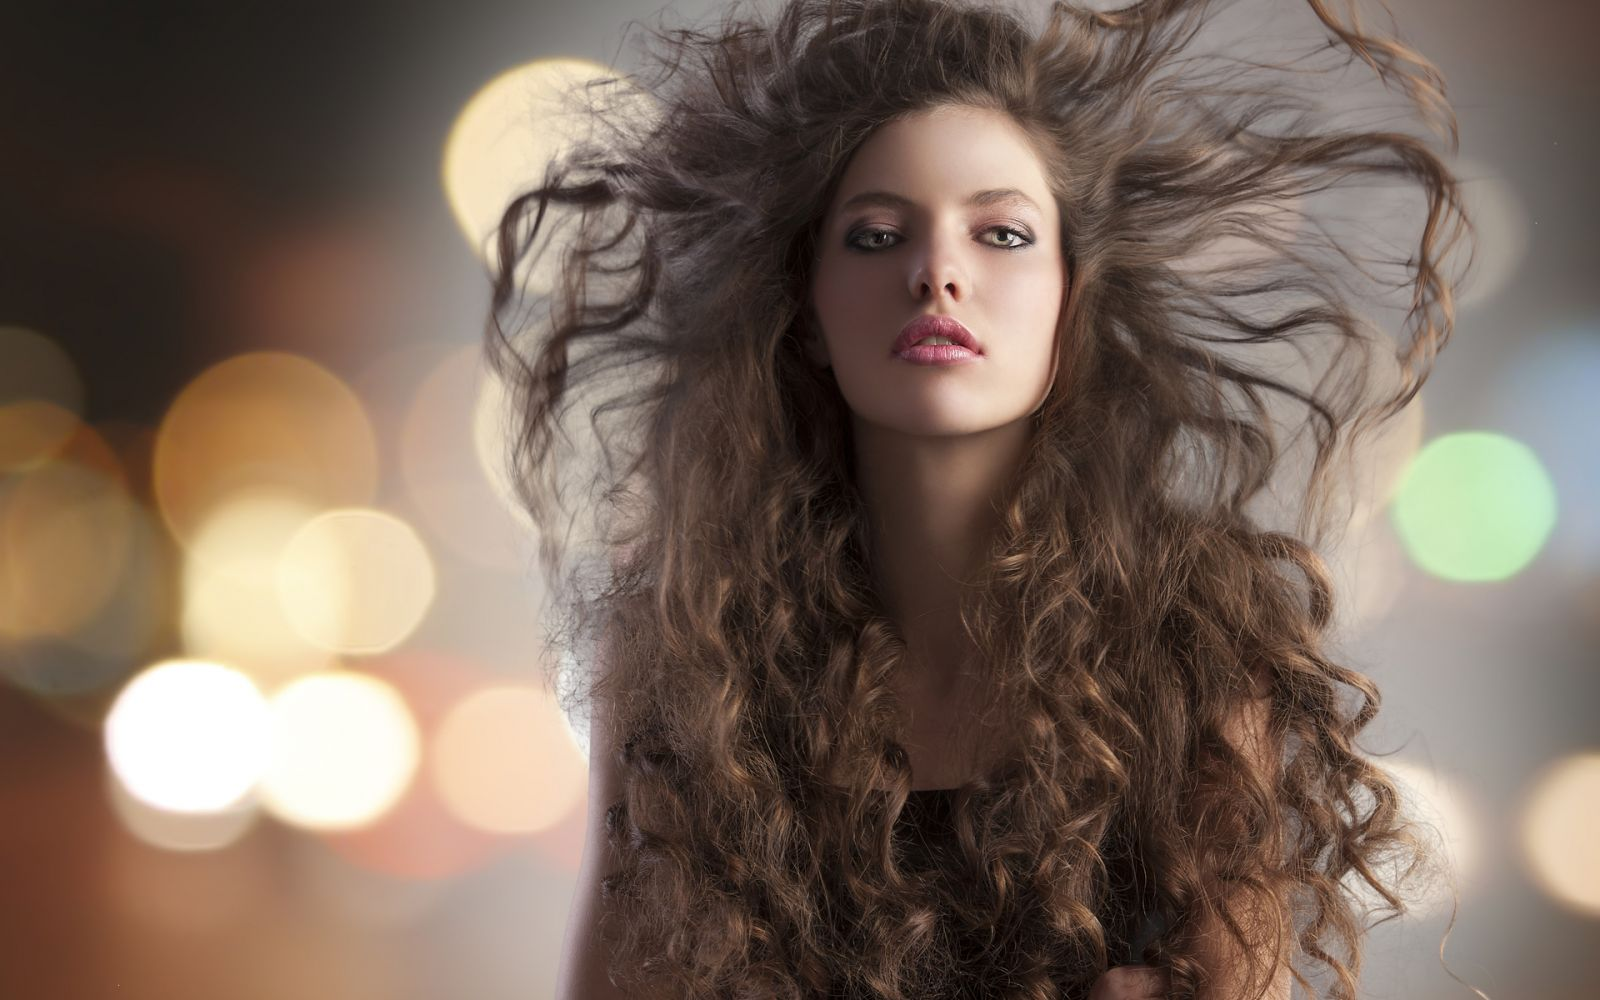 Beautiful and sexy girl with long hair wearing black bra photo by valuavitaly on envato elements